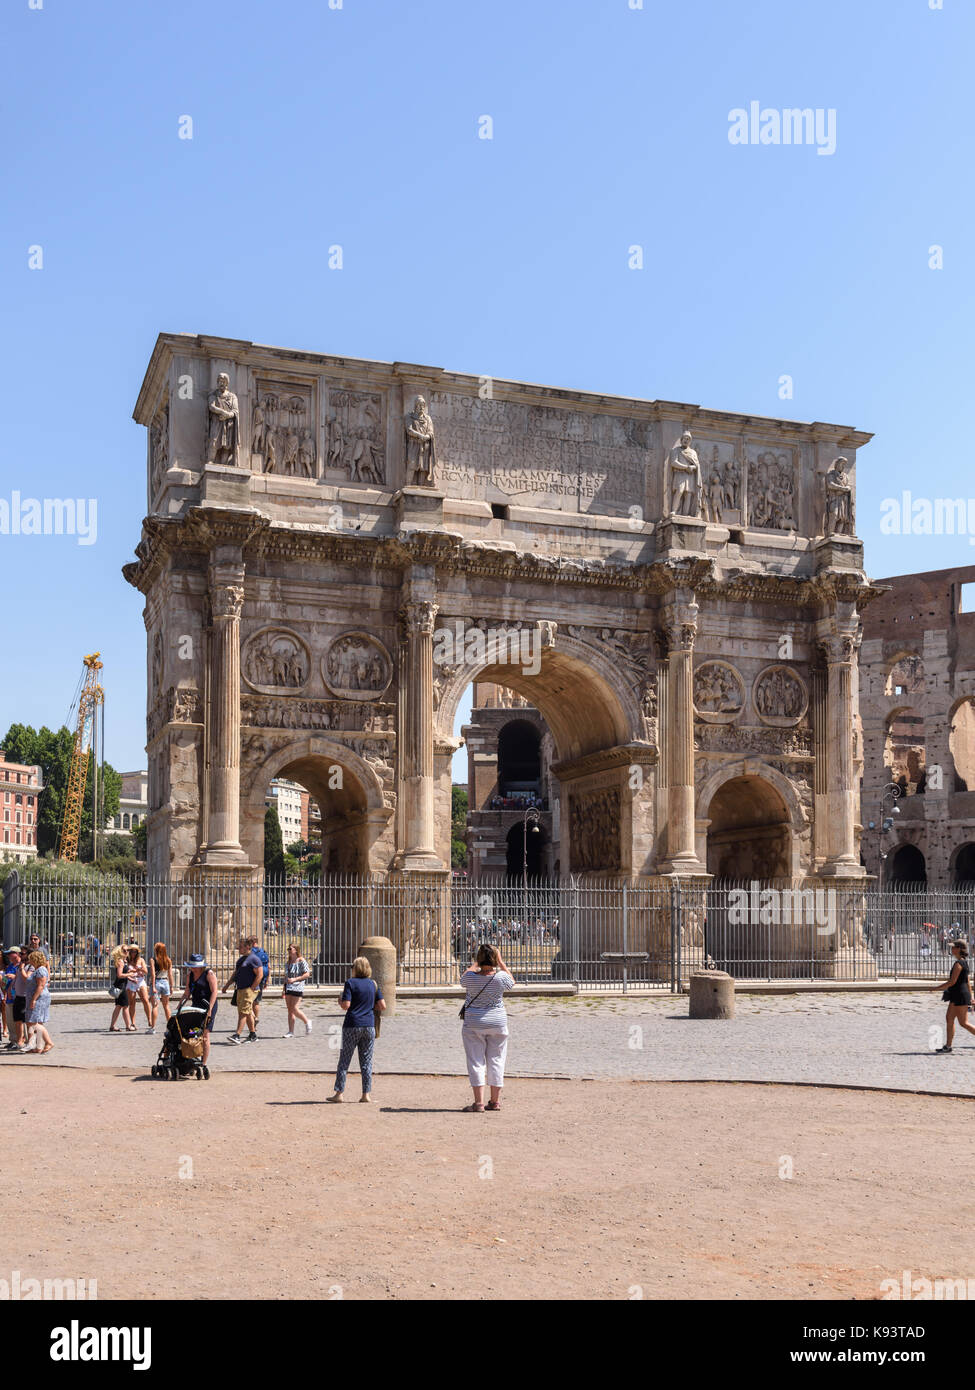 Arch of Constantine, Rome, Italy - Stock Image